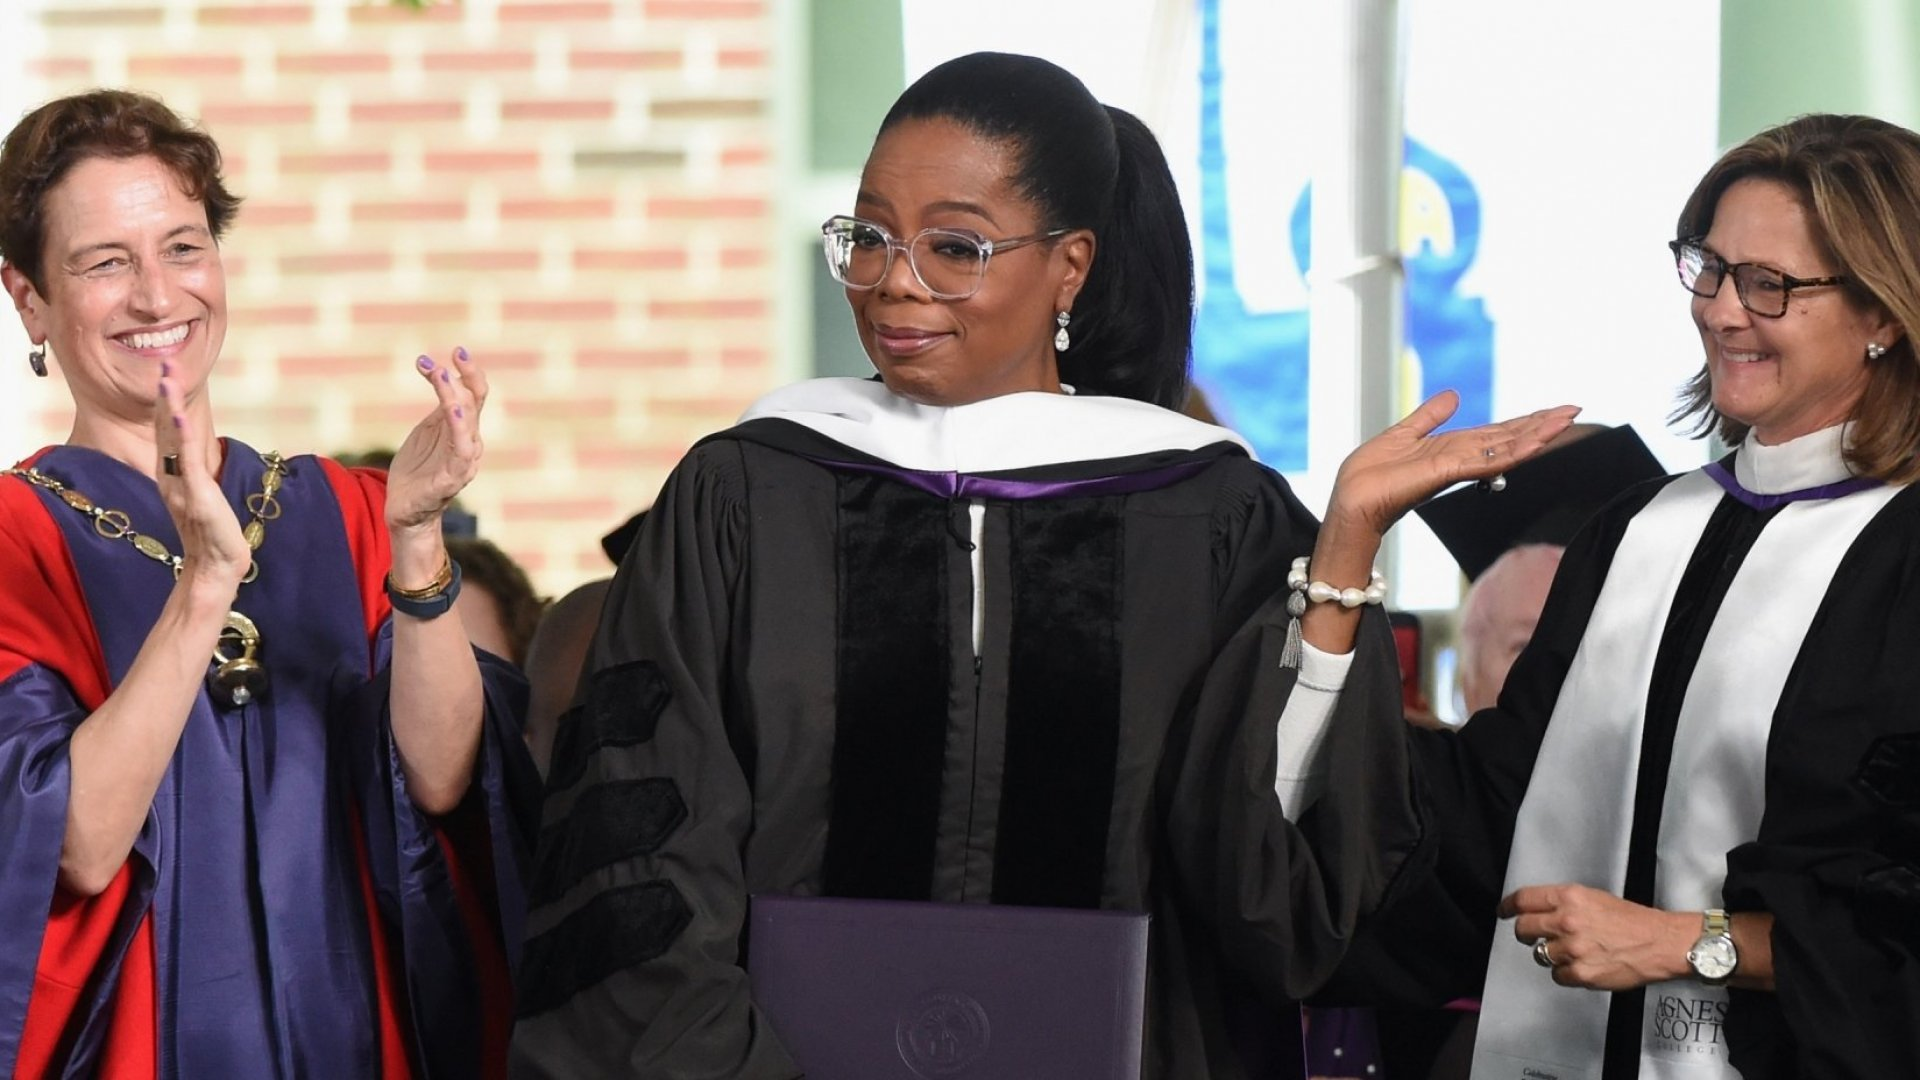 The Best 7 Nuggets of Wisdom From This Year's Commencement Speeches